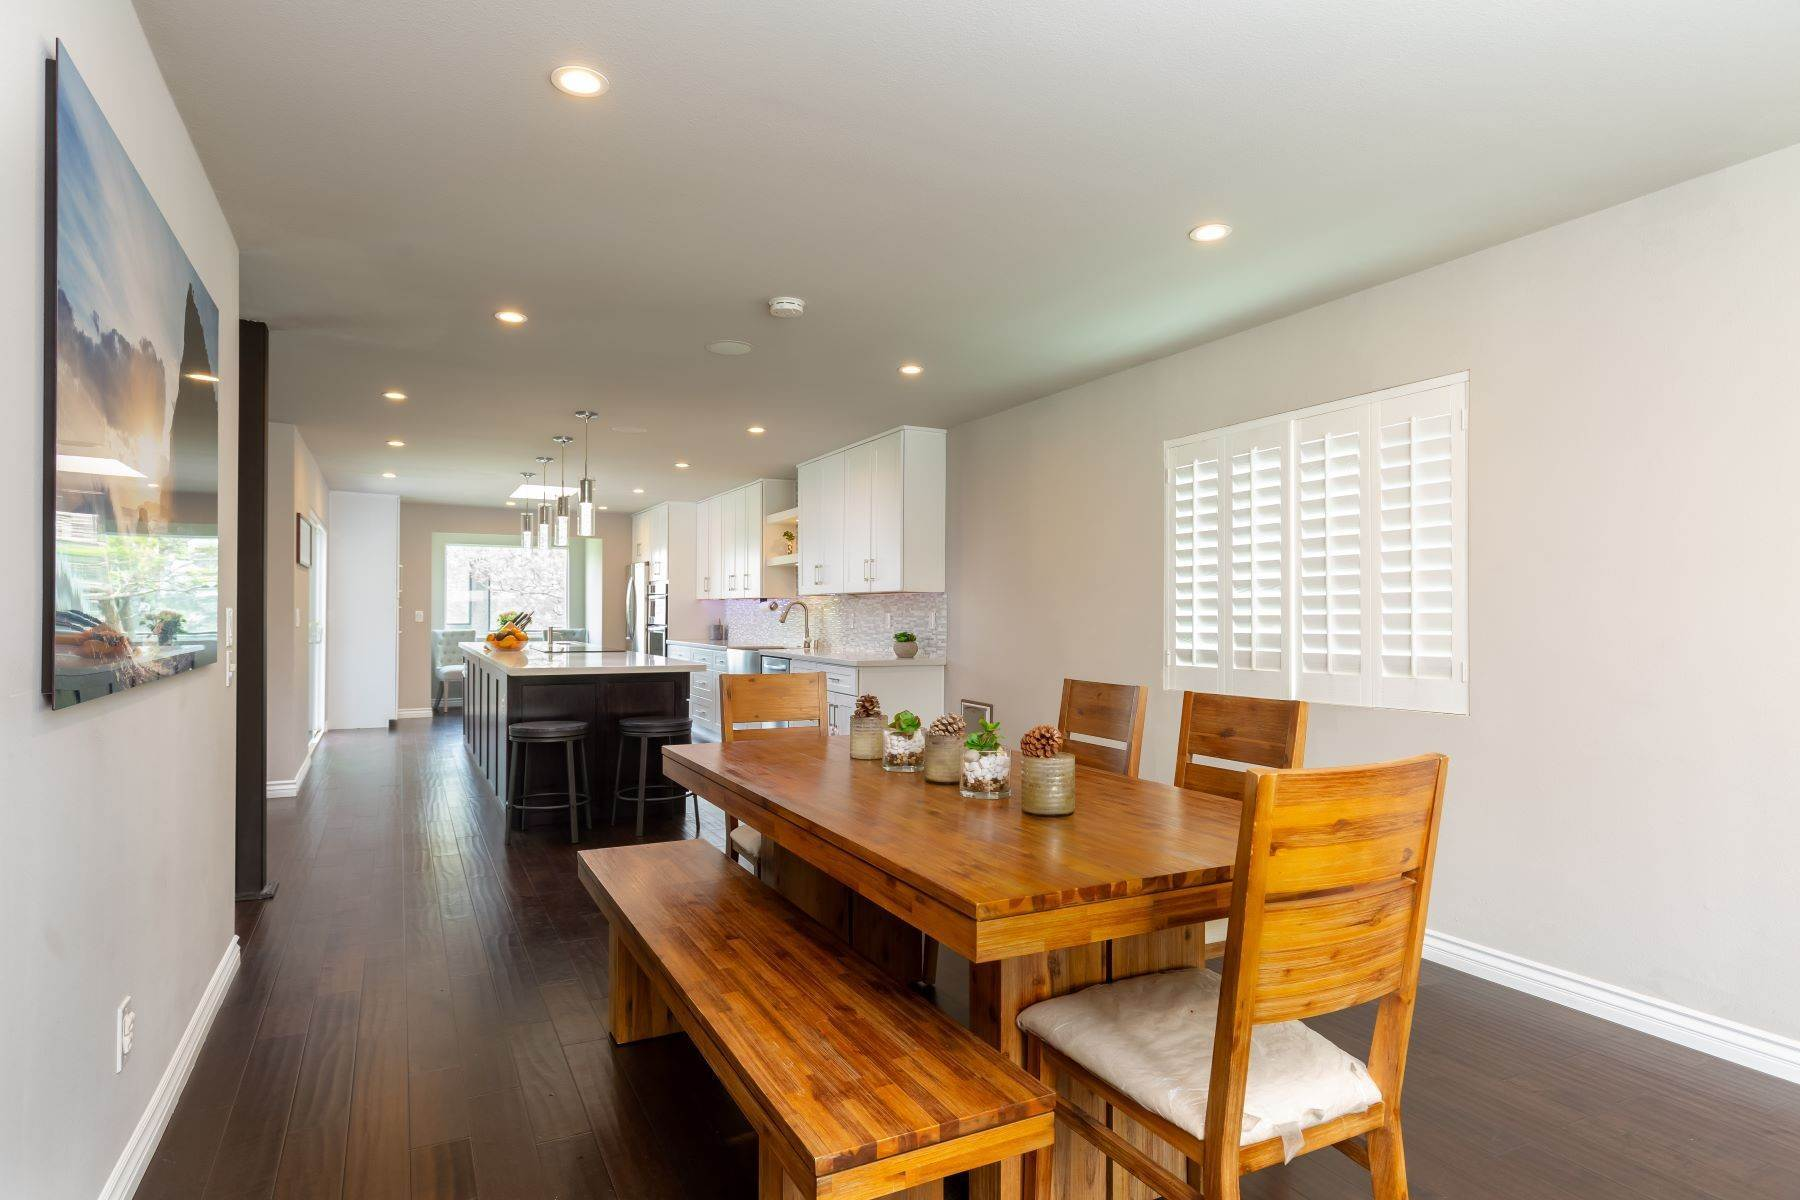 7. Single Family Homes for Sale at 13475 Portofino Drive, Del Mar, CA 92014 13475 Portofino Drive Del Mar, California 92014 United States